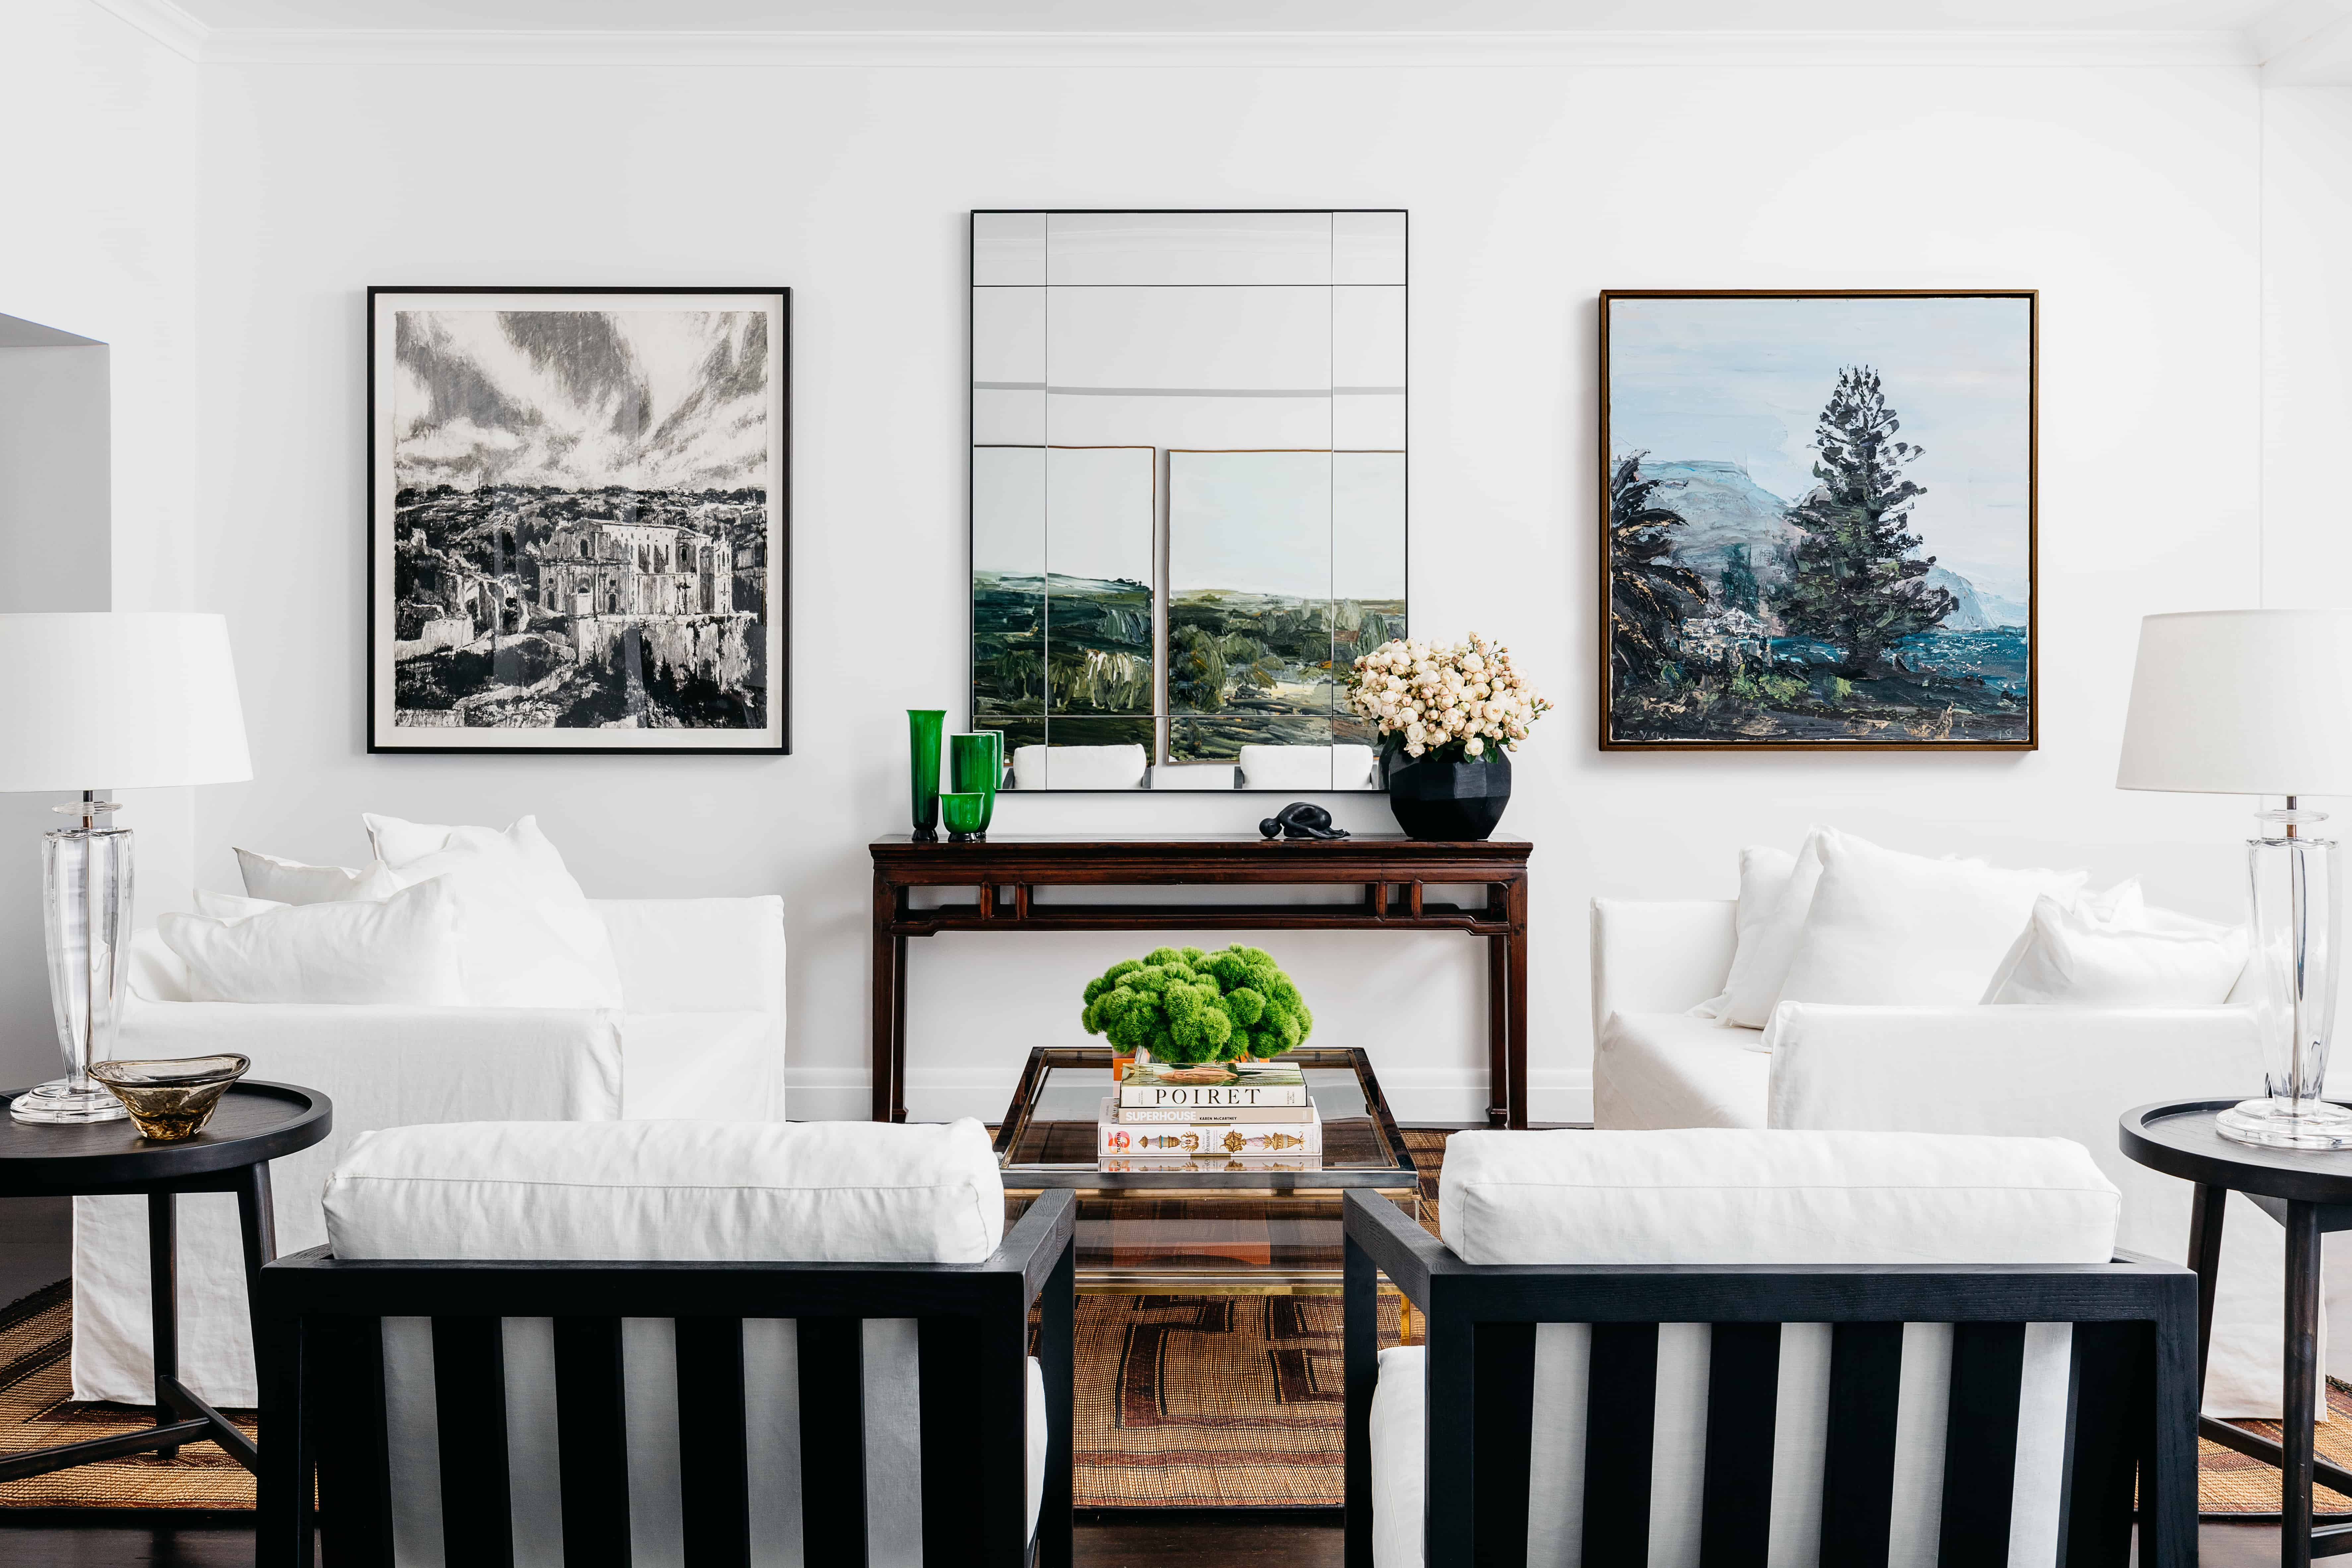 Golf House Living_ From left to right_Nicholas Harding (ink on paper from Olsen Irwin, Woollahra, Paul Ryan oil on linen from Olsen Irwin, Woollahra, Guaxs vase from Conley and Co